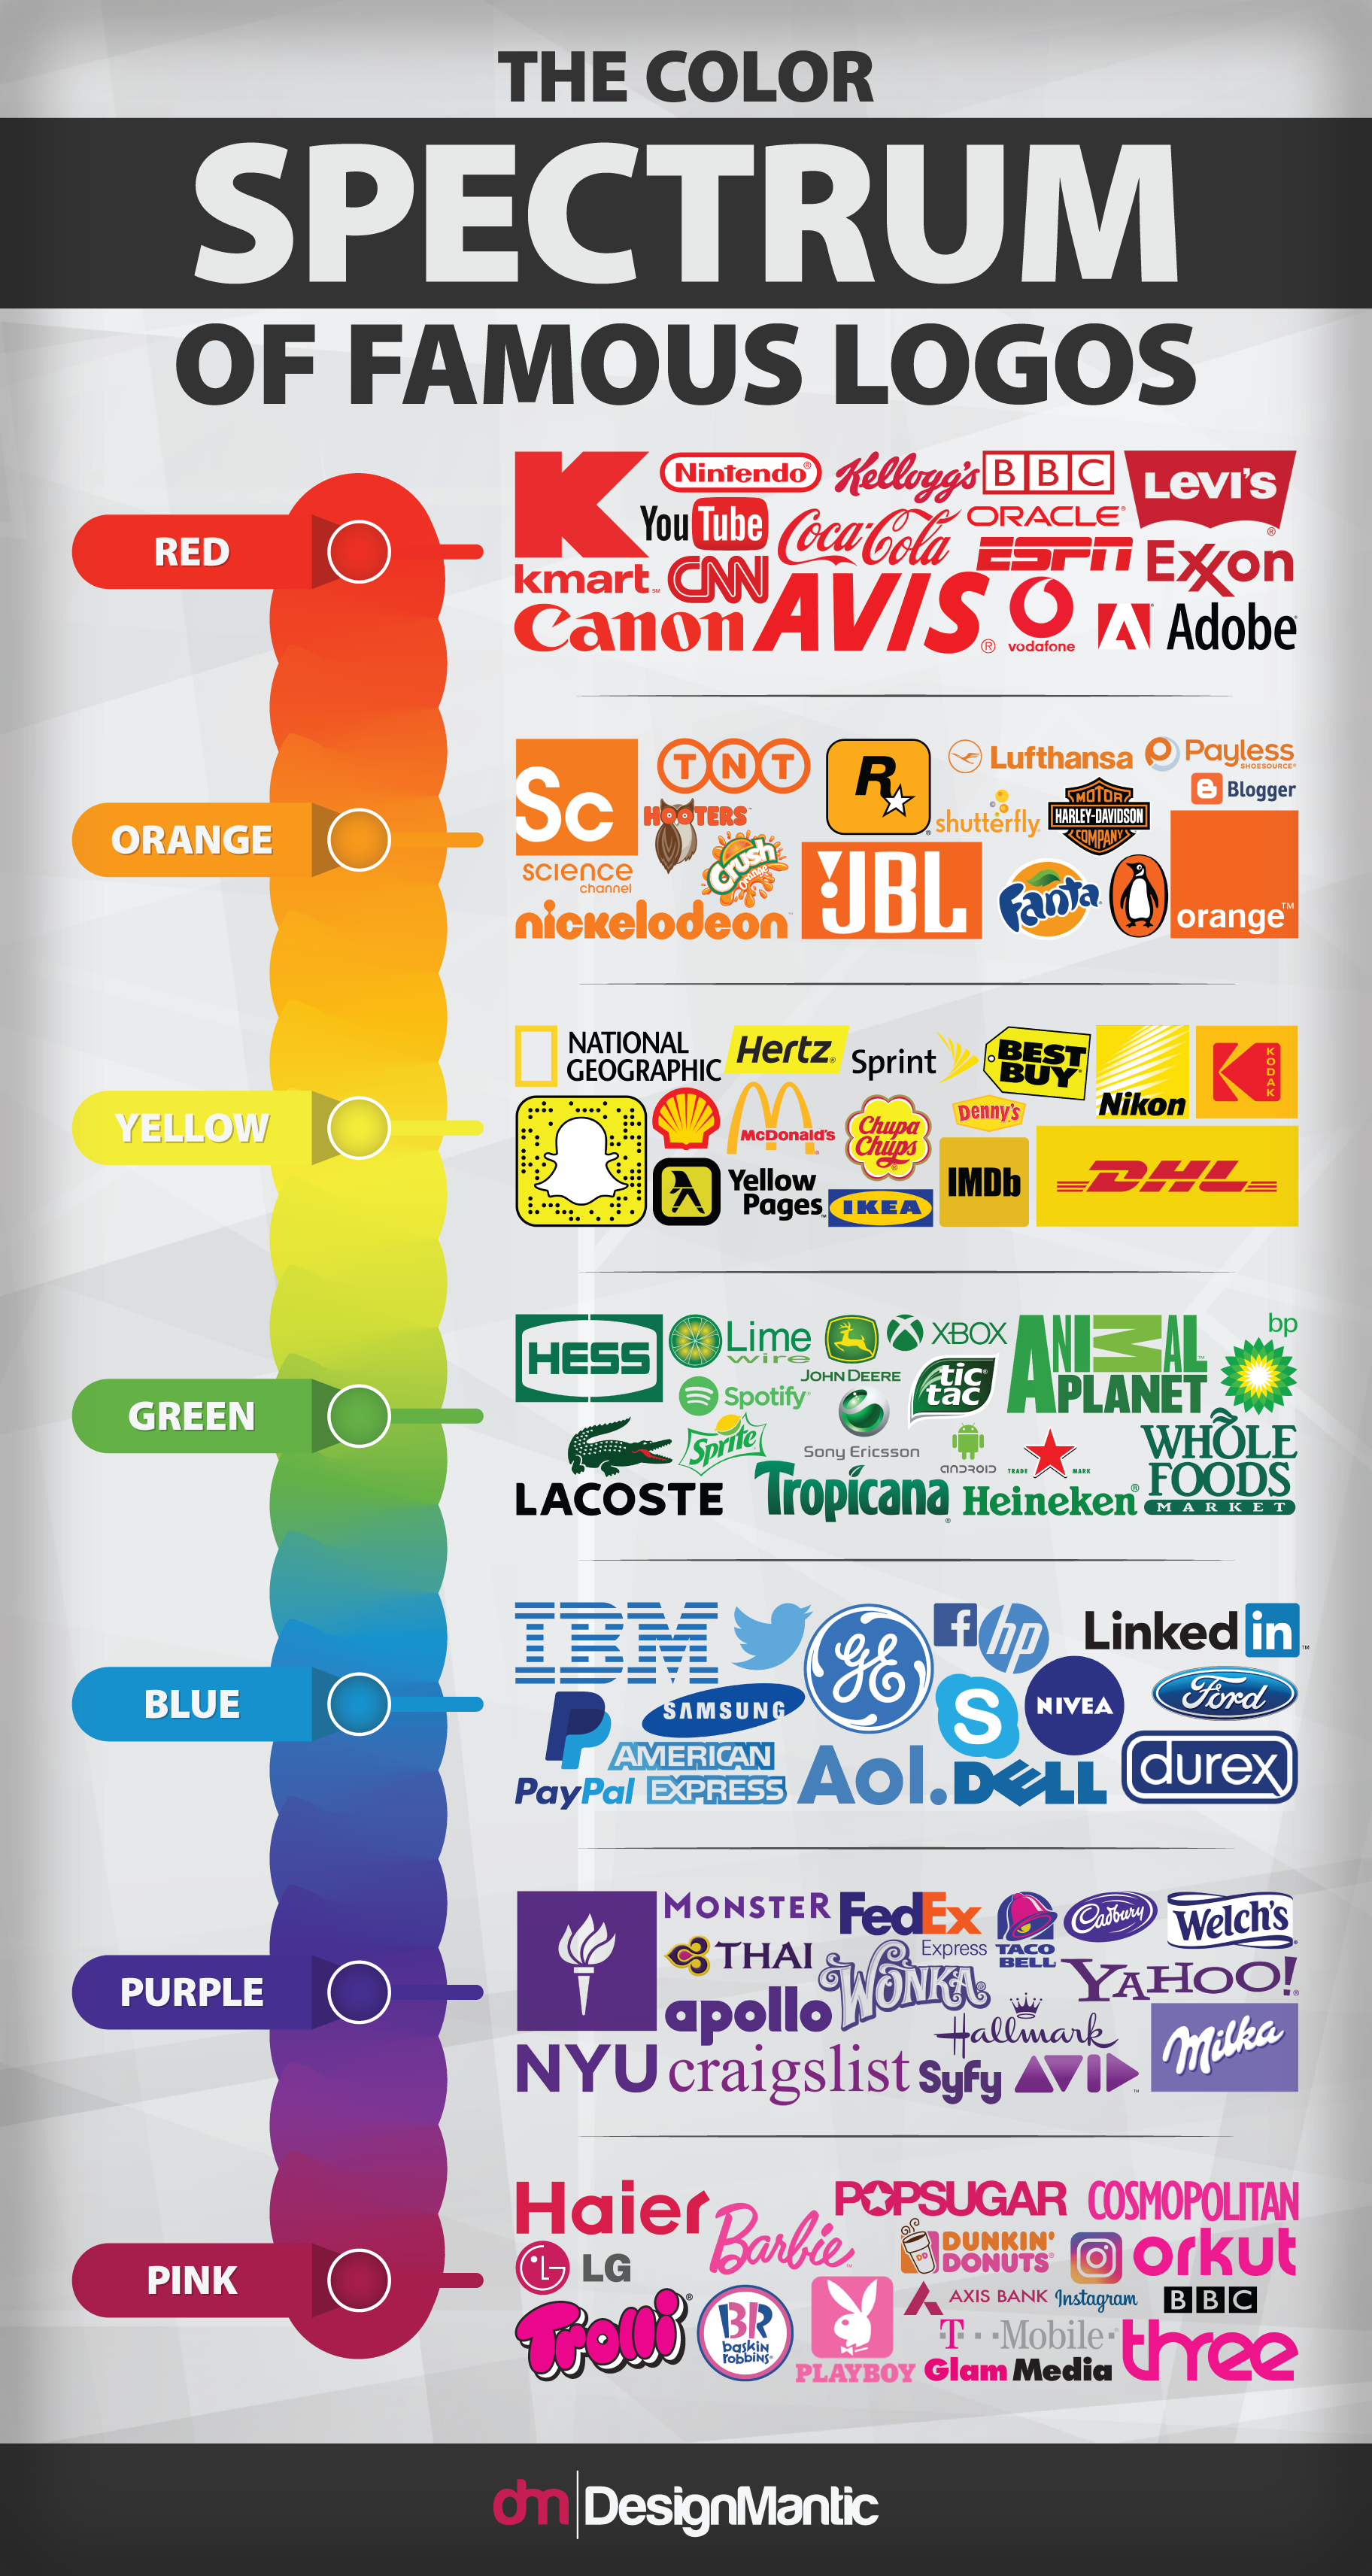 Famous Logos On The Color Spectrum If We Consider Only One Design Element Ie